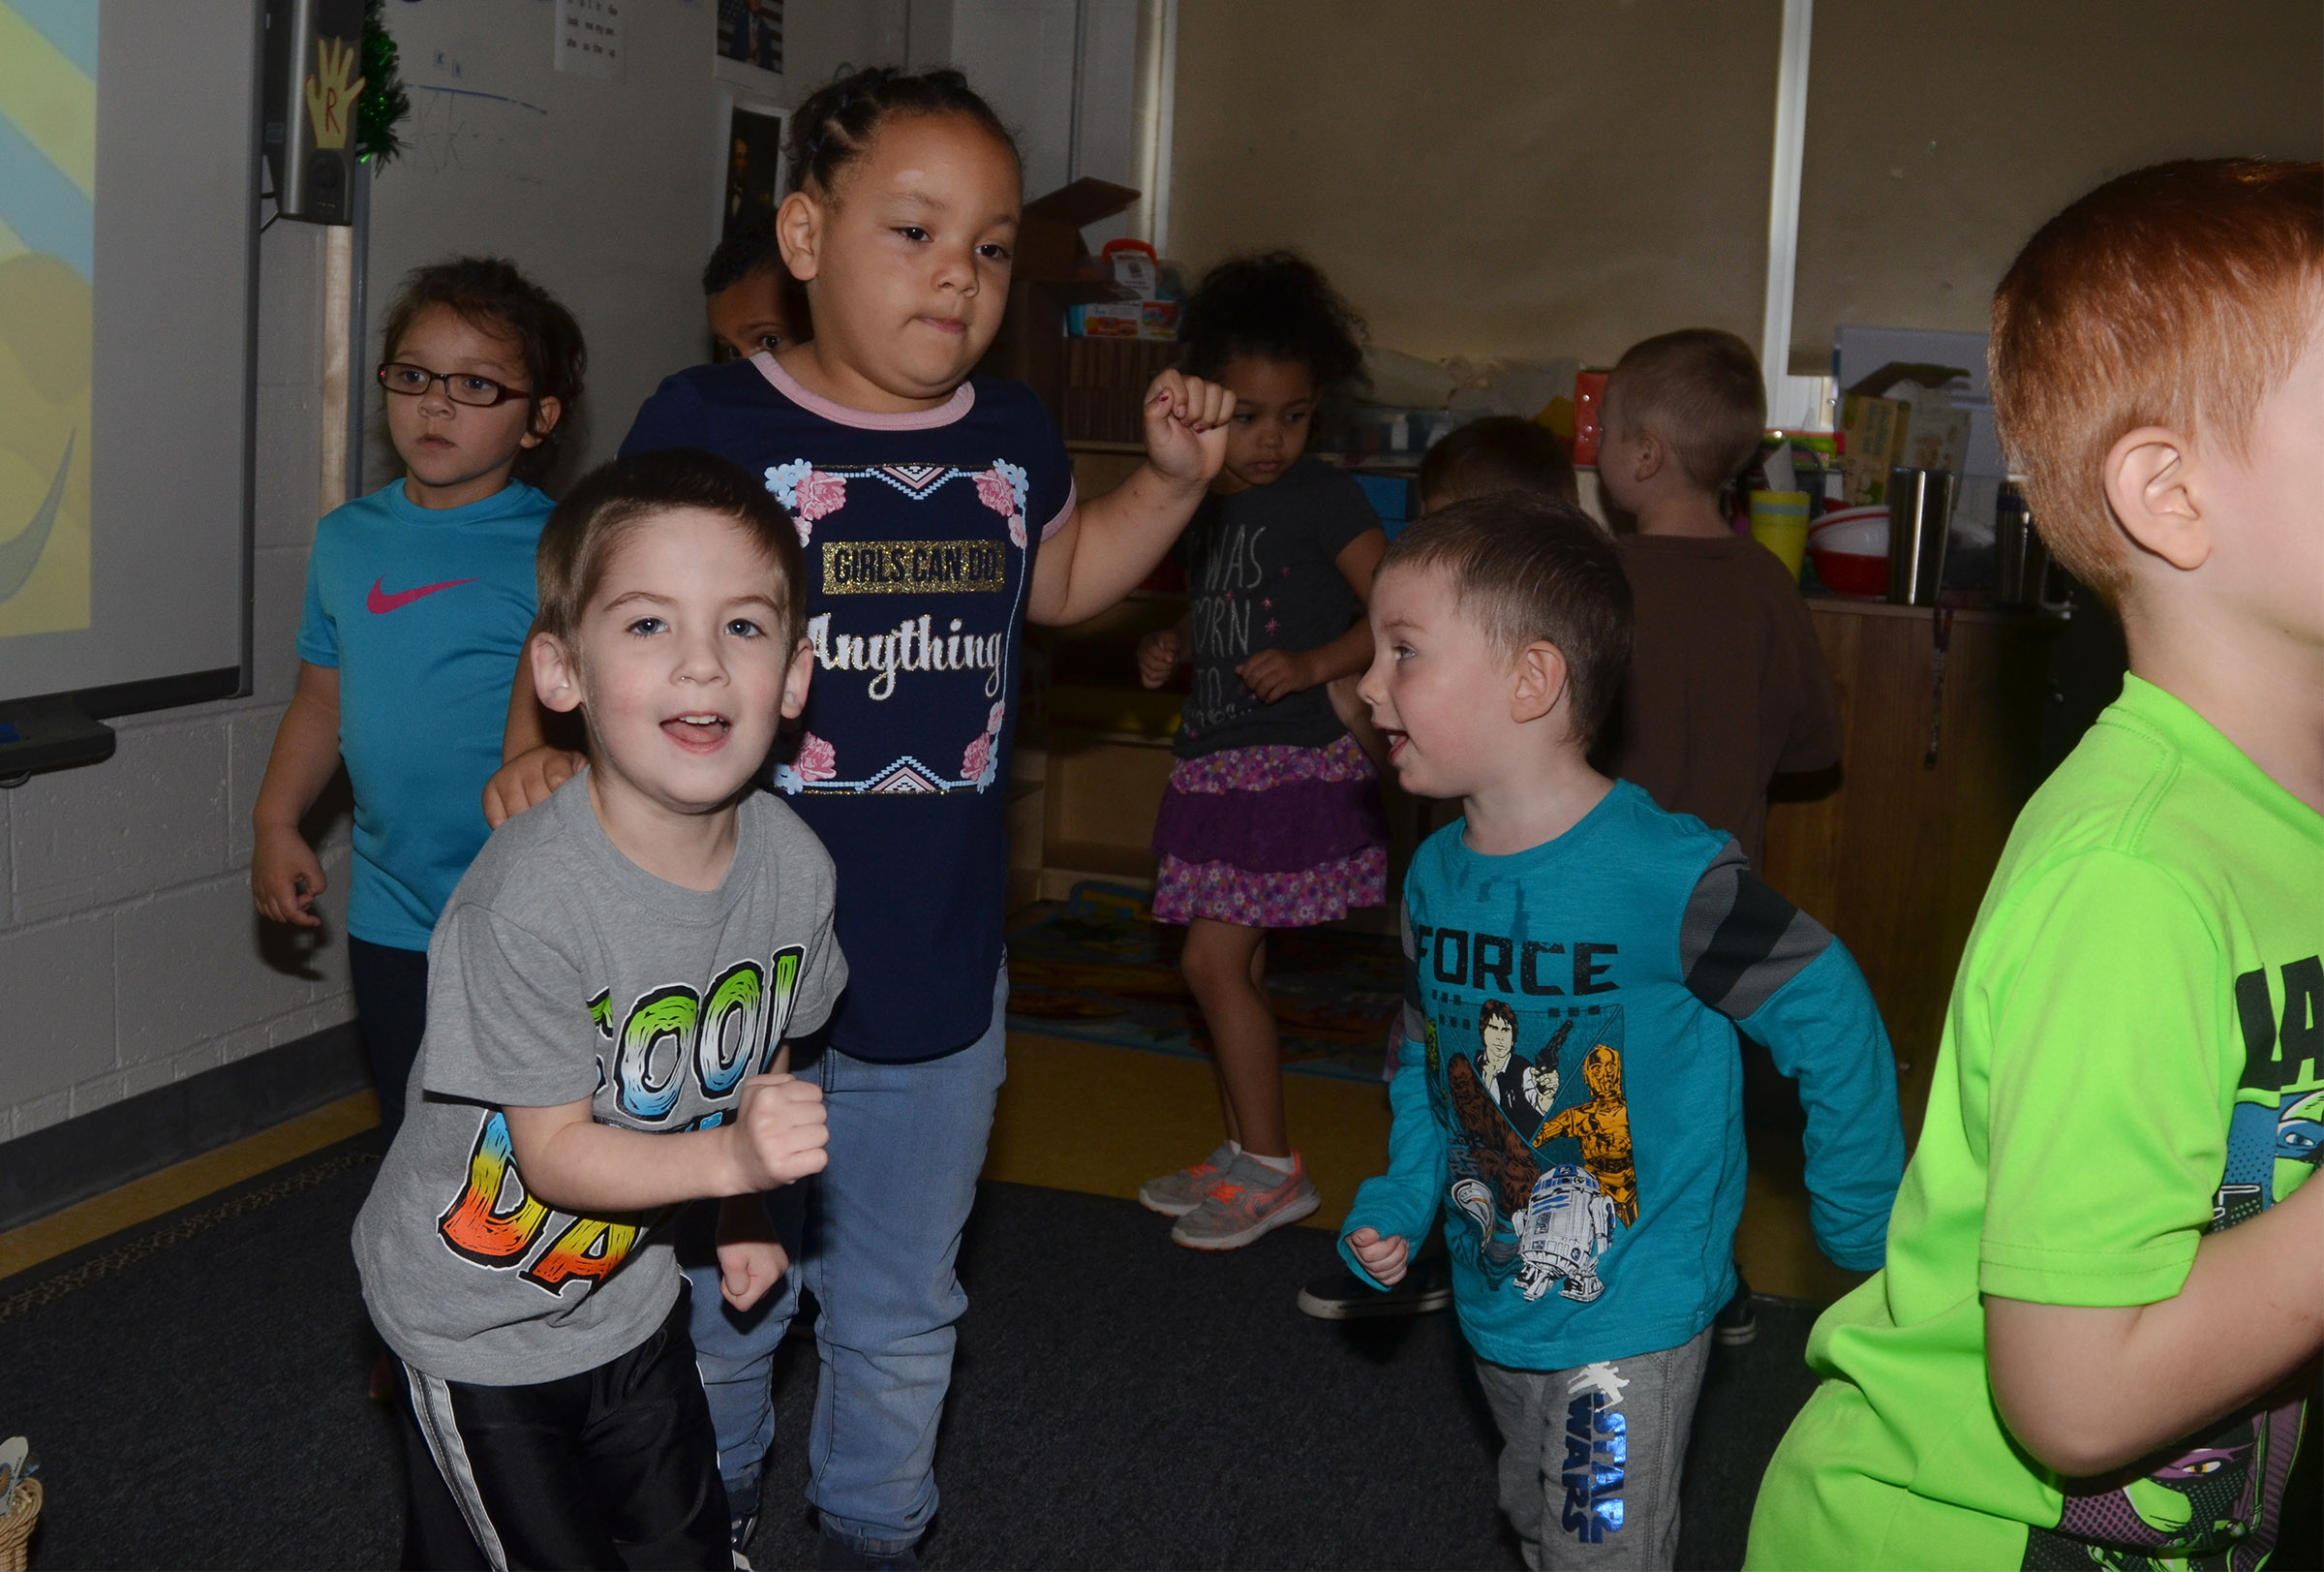 CES preschool students Charlie Woodbury, at left, and Chase Arnett dance together.